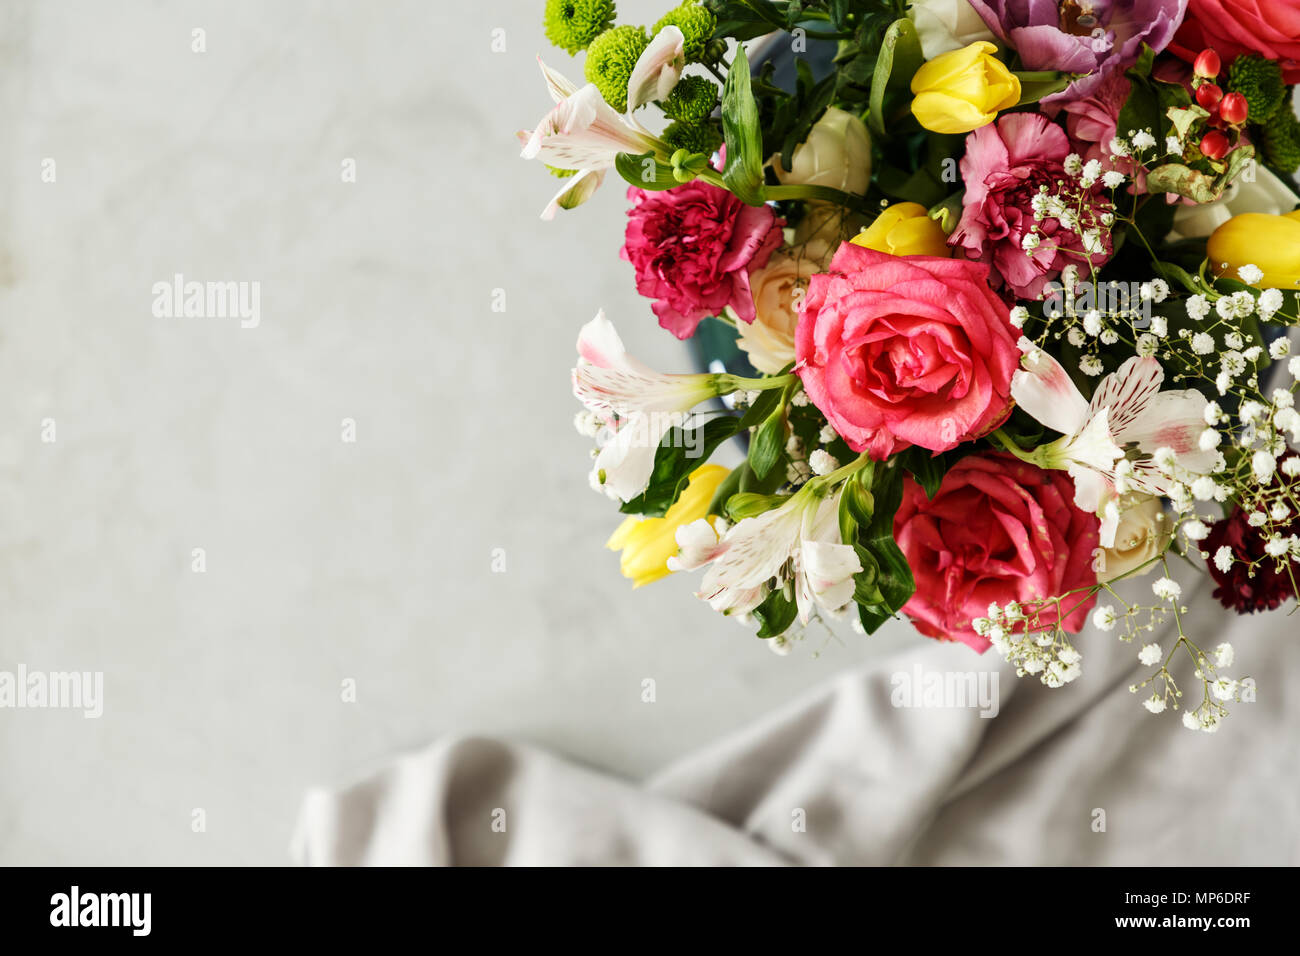 Top View Of A Colorful Bouquet Of Beautiful Flowers In The Corner